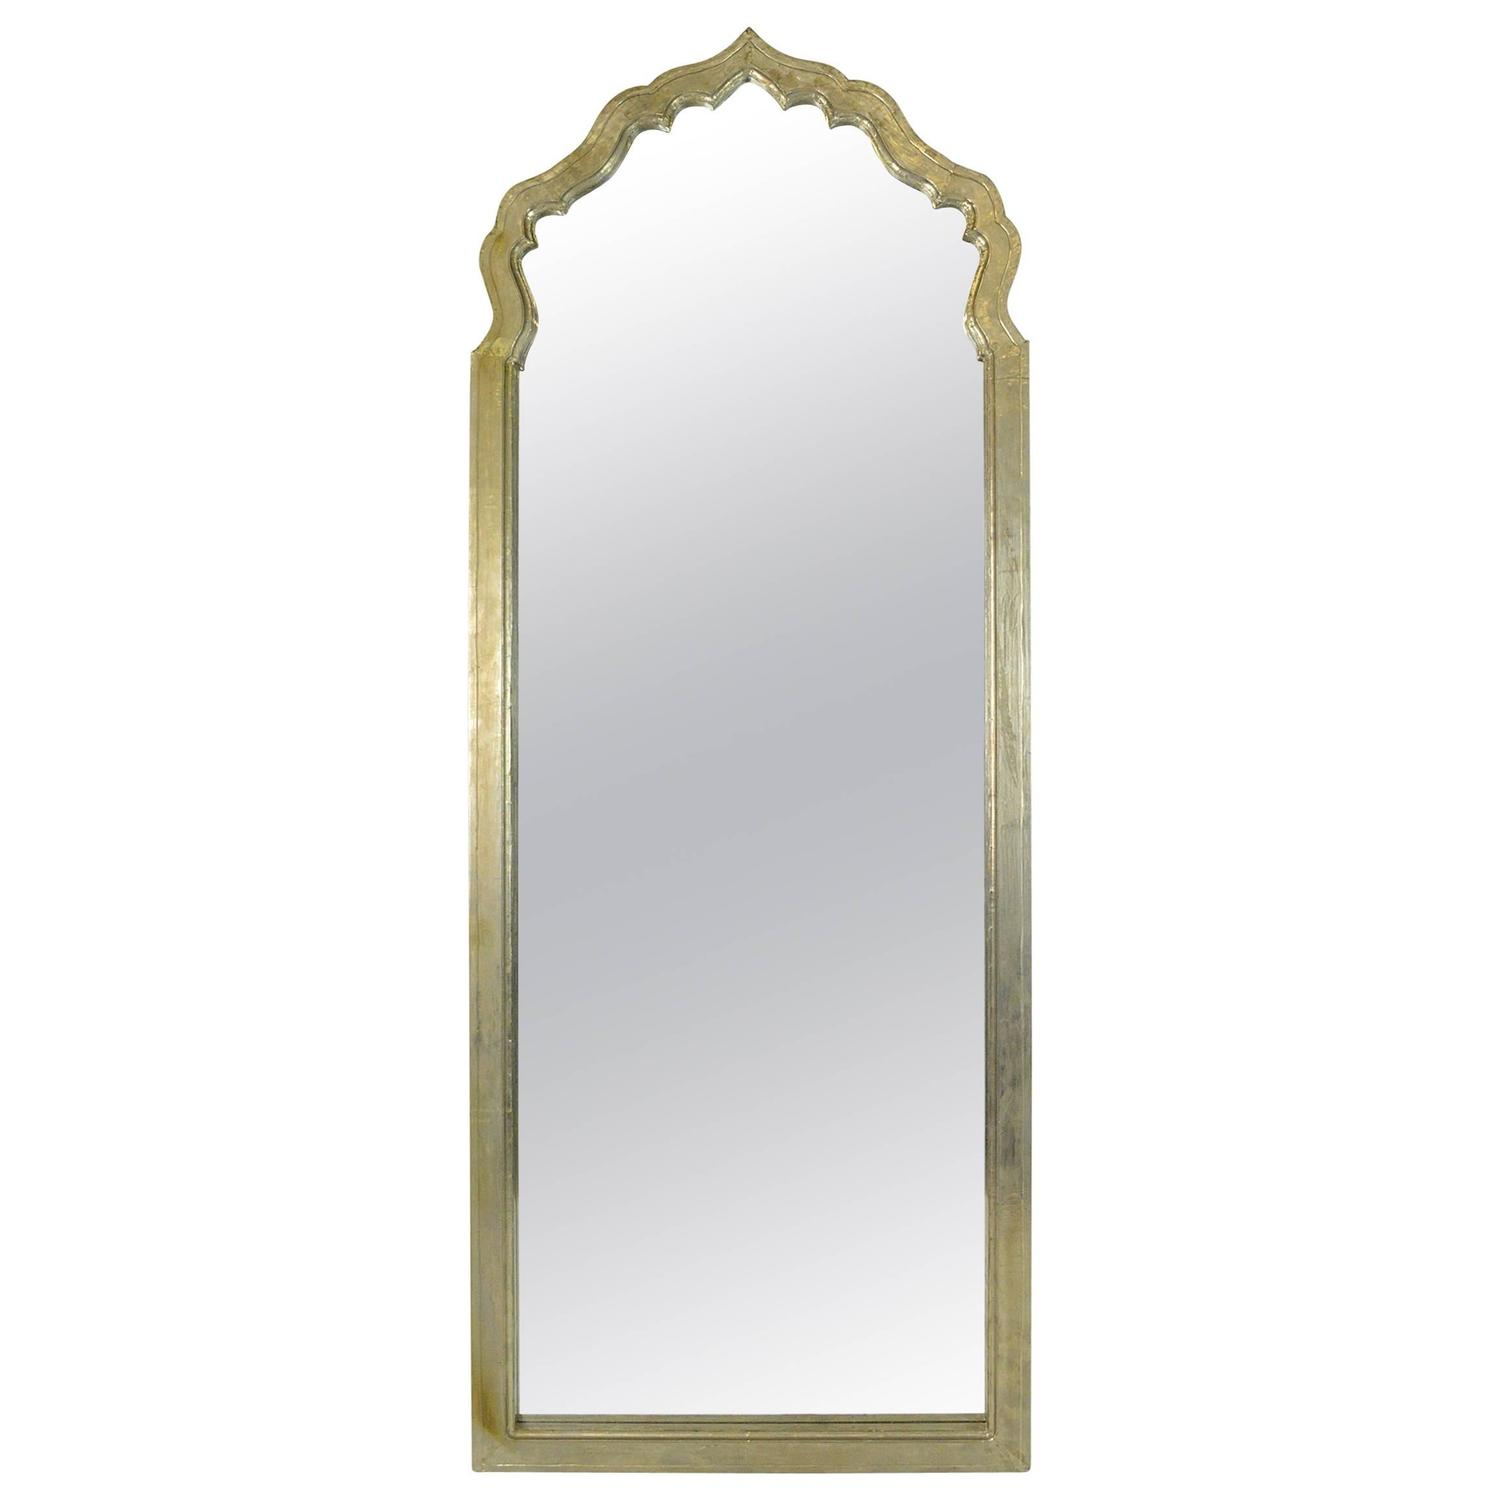 Arched gilt mirror at 1stdibs - Arched Gilt Mirror At 1stdibs 27